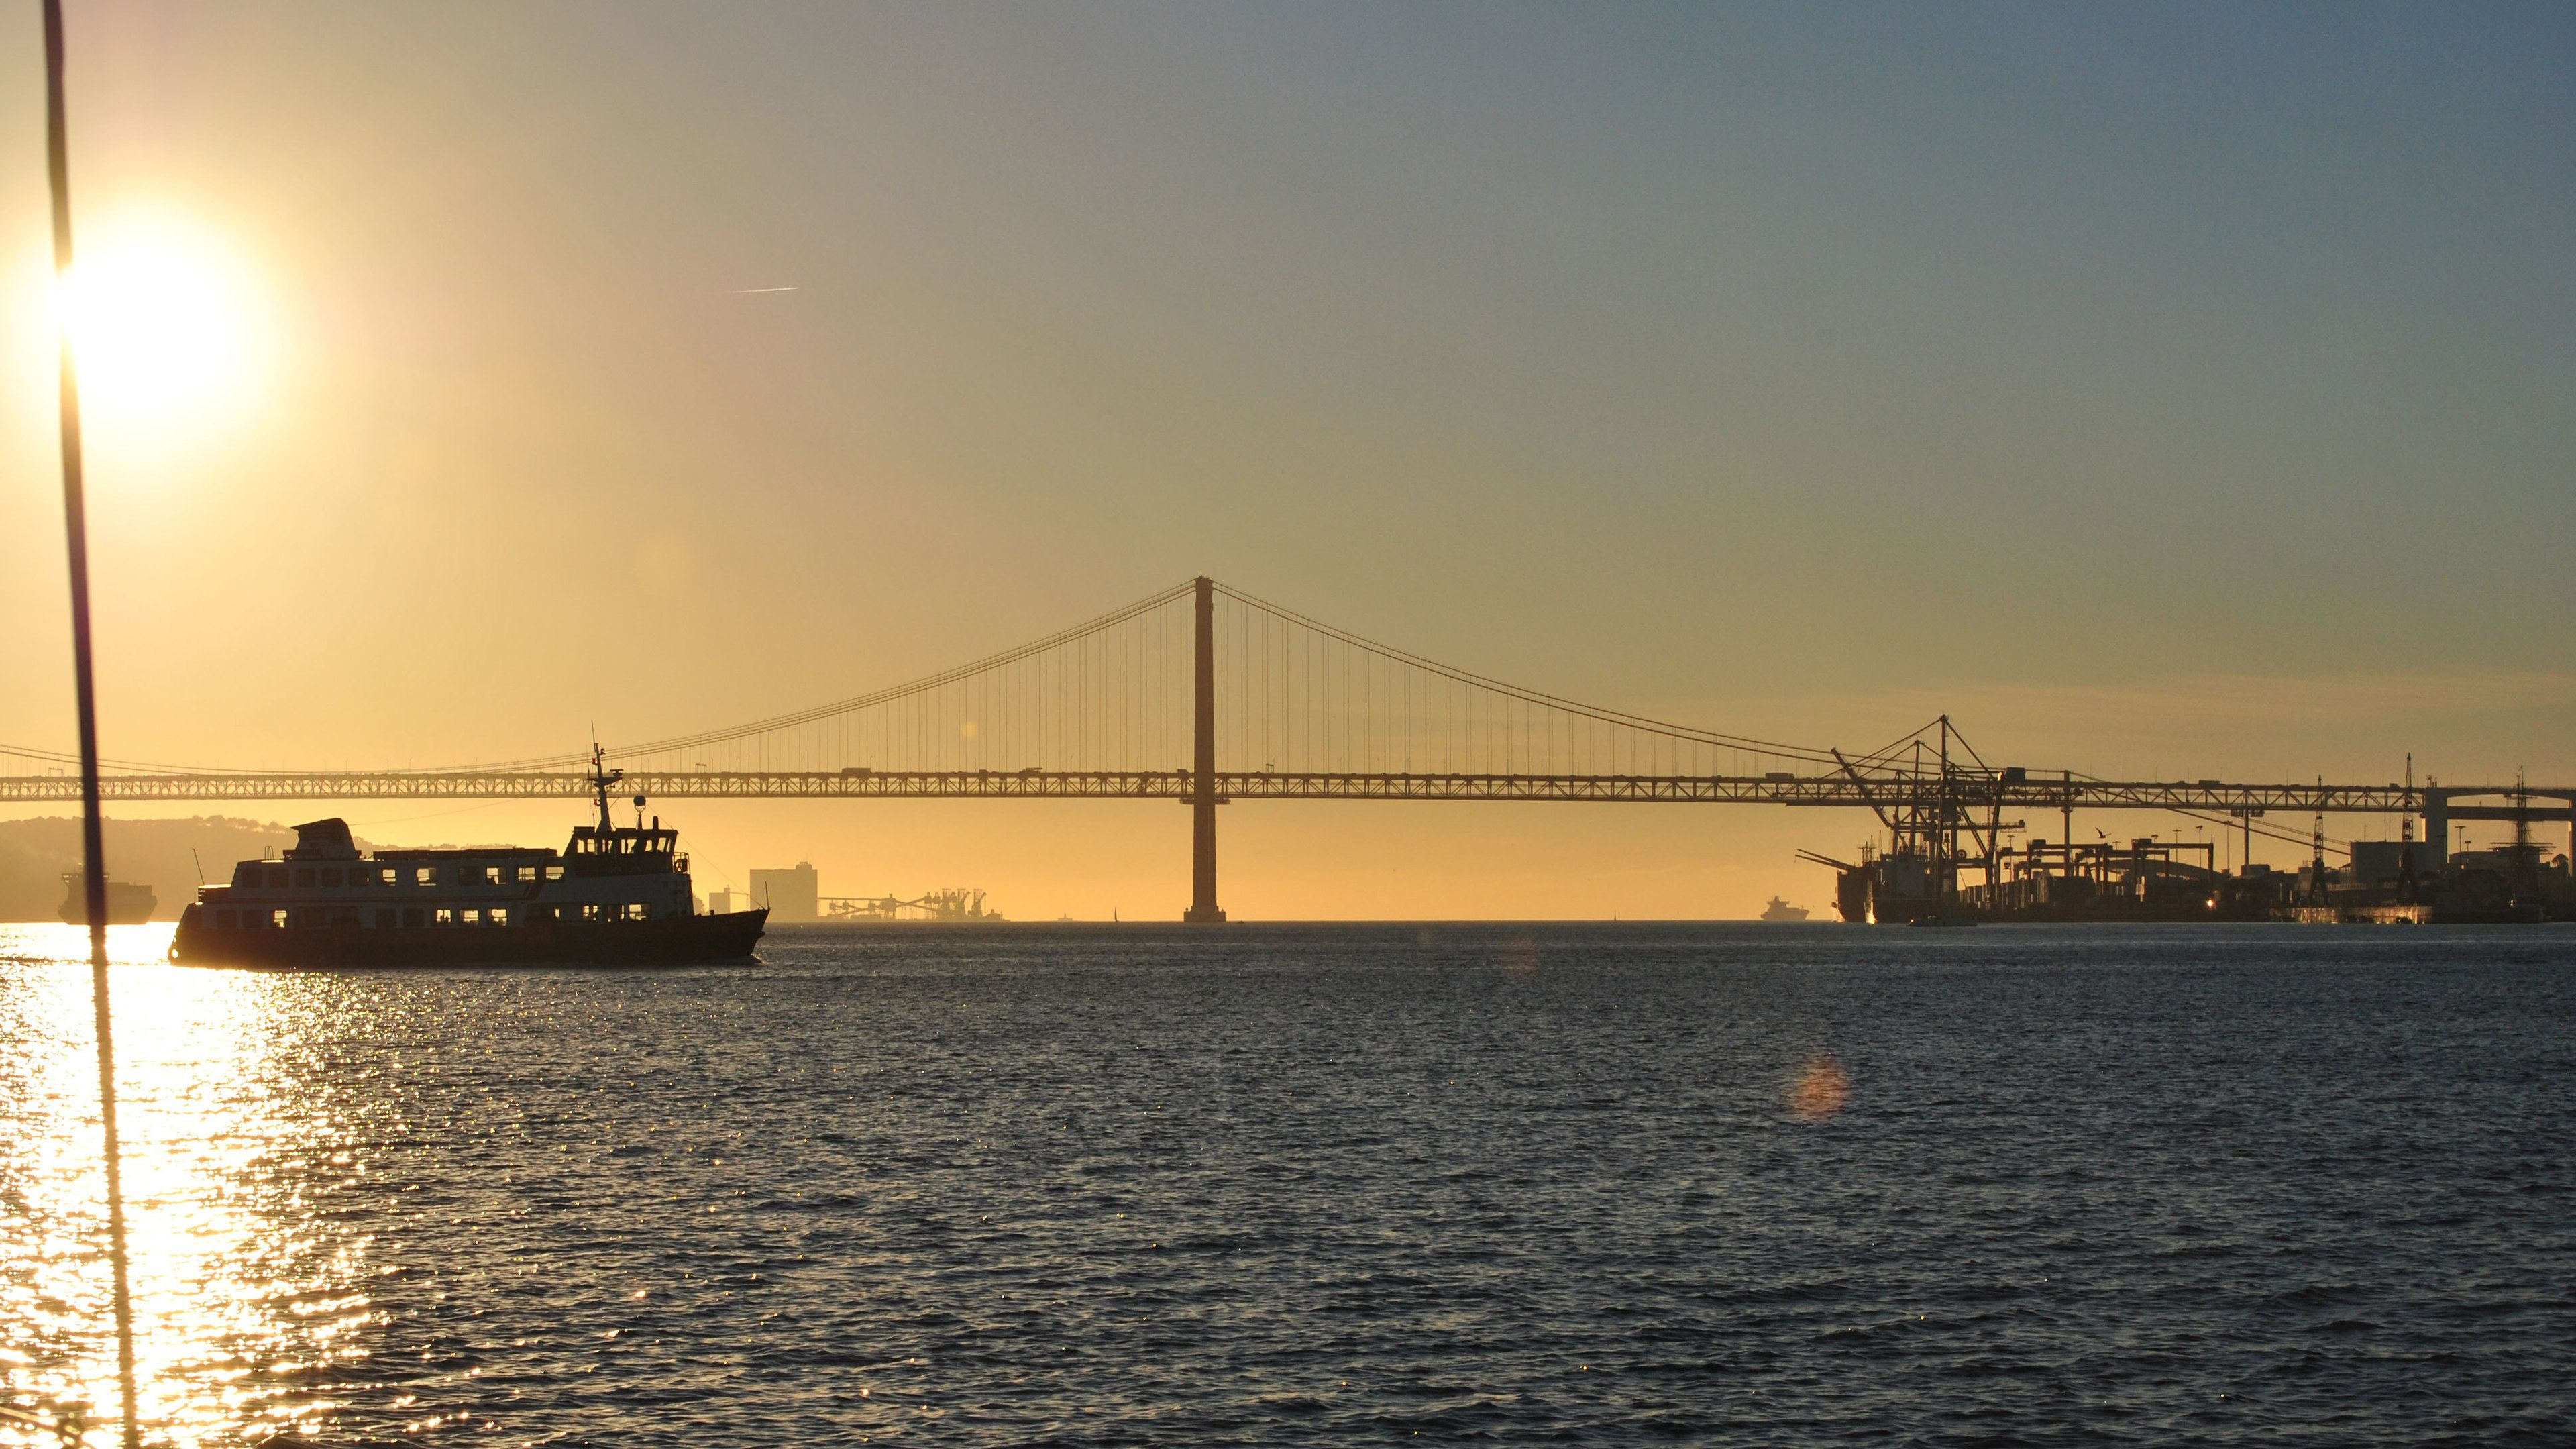 View of bridge and ferry in Lisbon at sunset